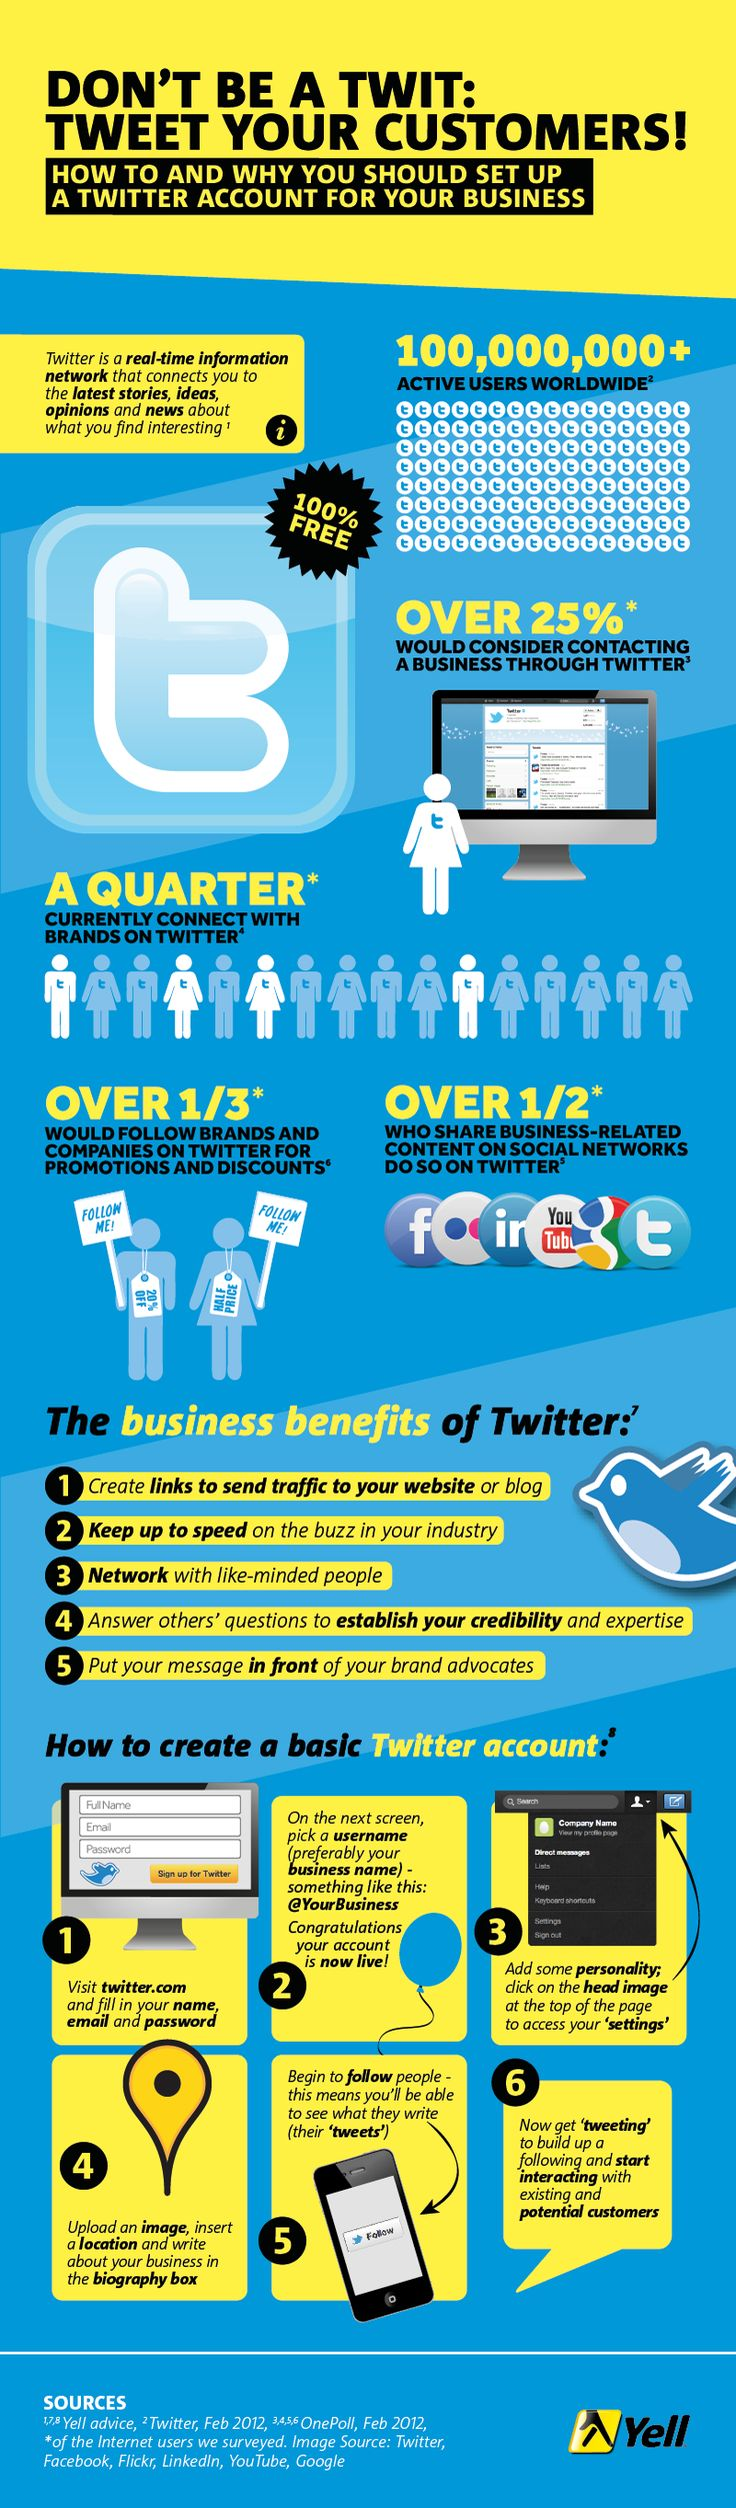 Dont be a Twit INfographic